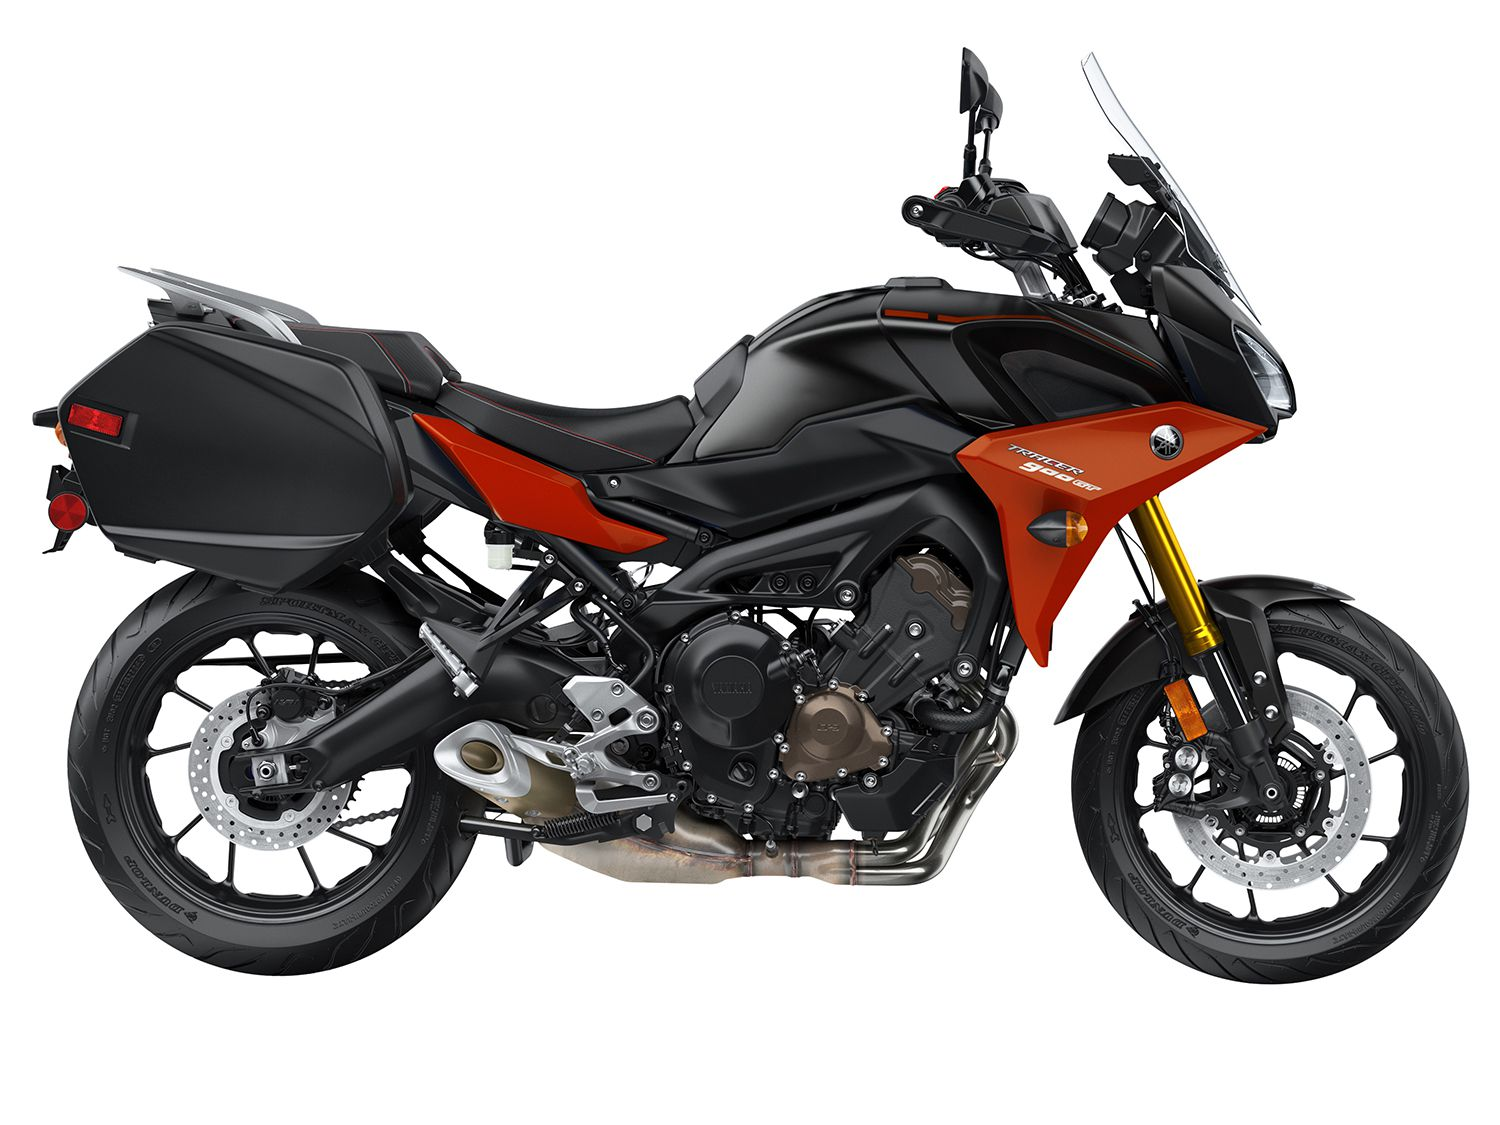 Yamaha's most up-to-date sport-tourer, the Tracer 900 GT is the sportiest machine here as well as the most affordable.